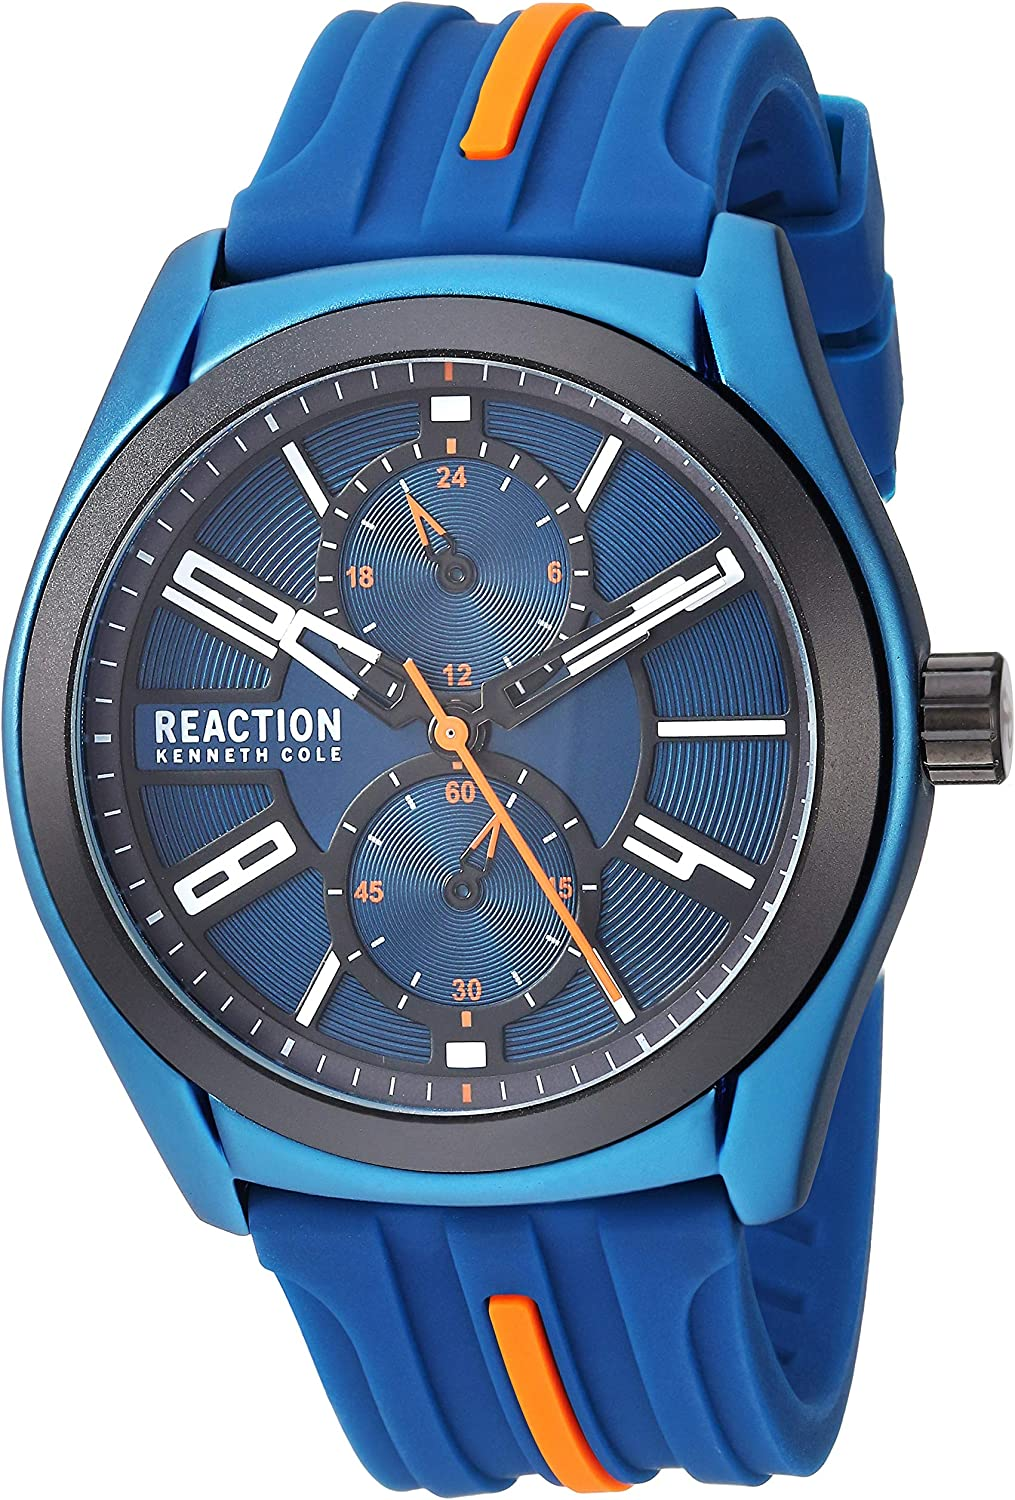 Kenneth Cole REACTION Men s Dress Sport Japanese-Quartz Watch with Silicone Strap, Blue, 21.2 Model RK50900002